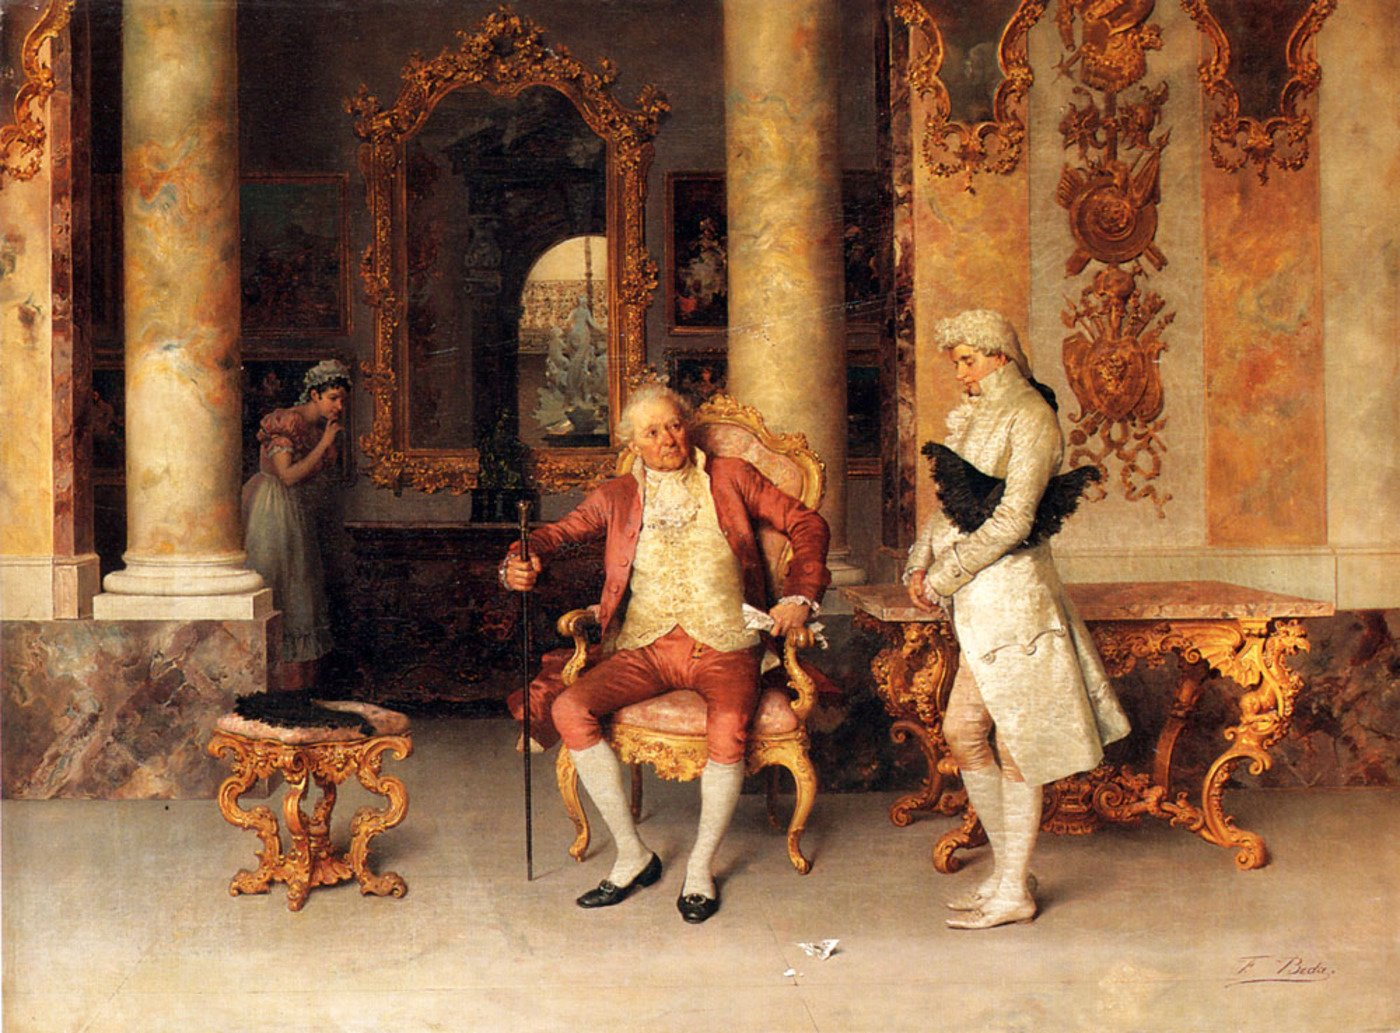 Painting of a woman eavesdropping on two men speaking in a parlor